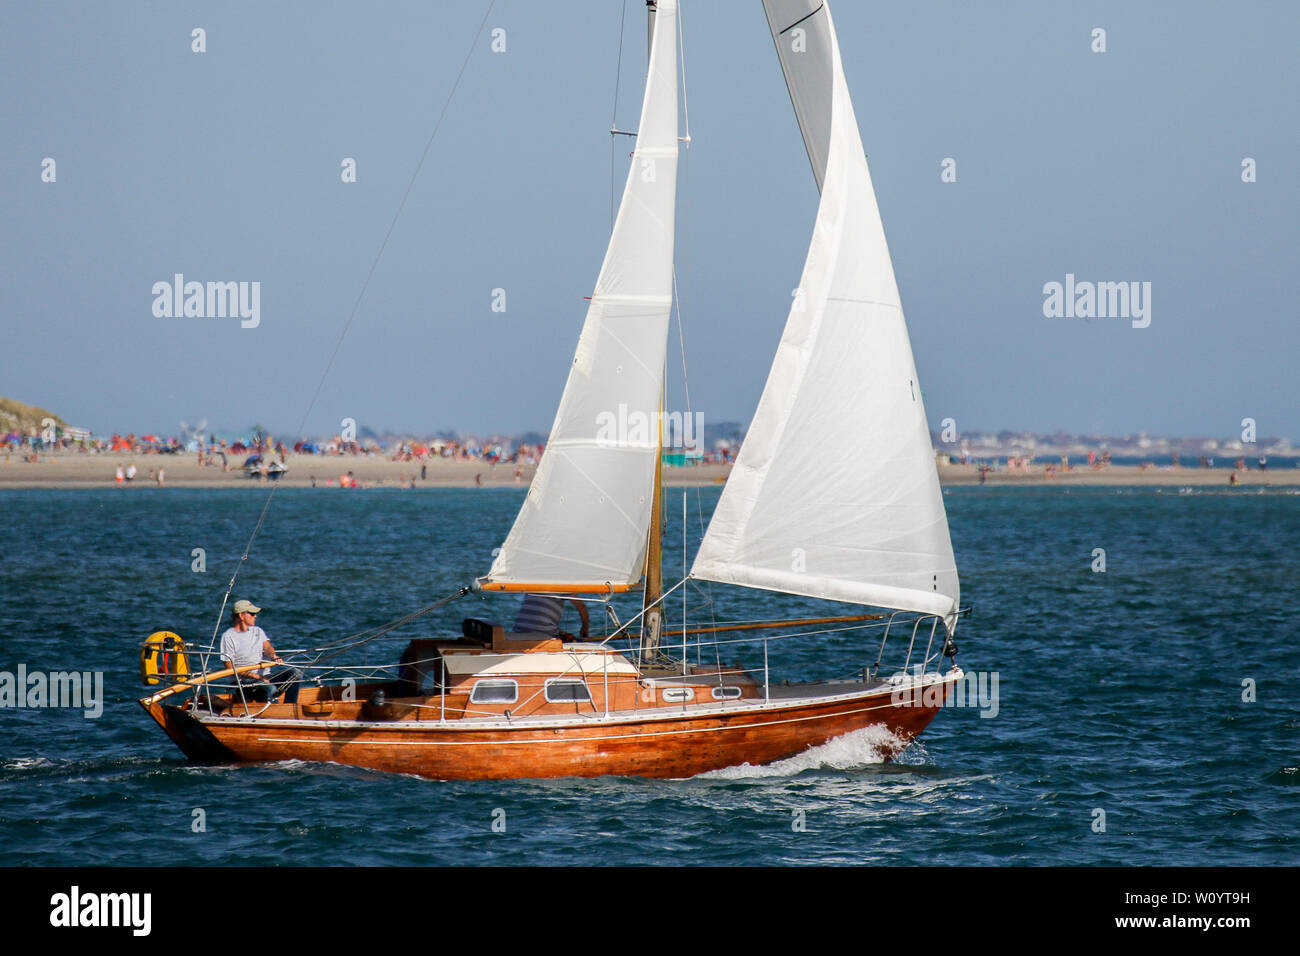 Bracklesham Road, Hayling Island. 28th June 2019. Beautiful sunny weather along the south coast today. Day trippers enjoying the weather at Hayling Island Sailing Club in Hampshire. Credit: james jagger/Alamy Live News - Stock Image